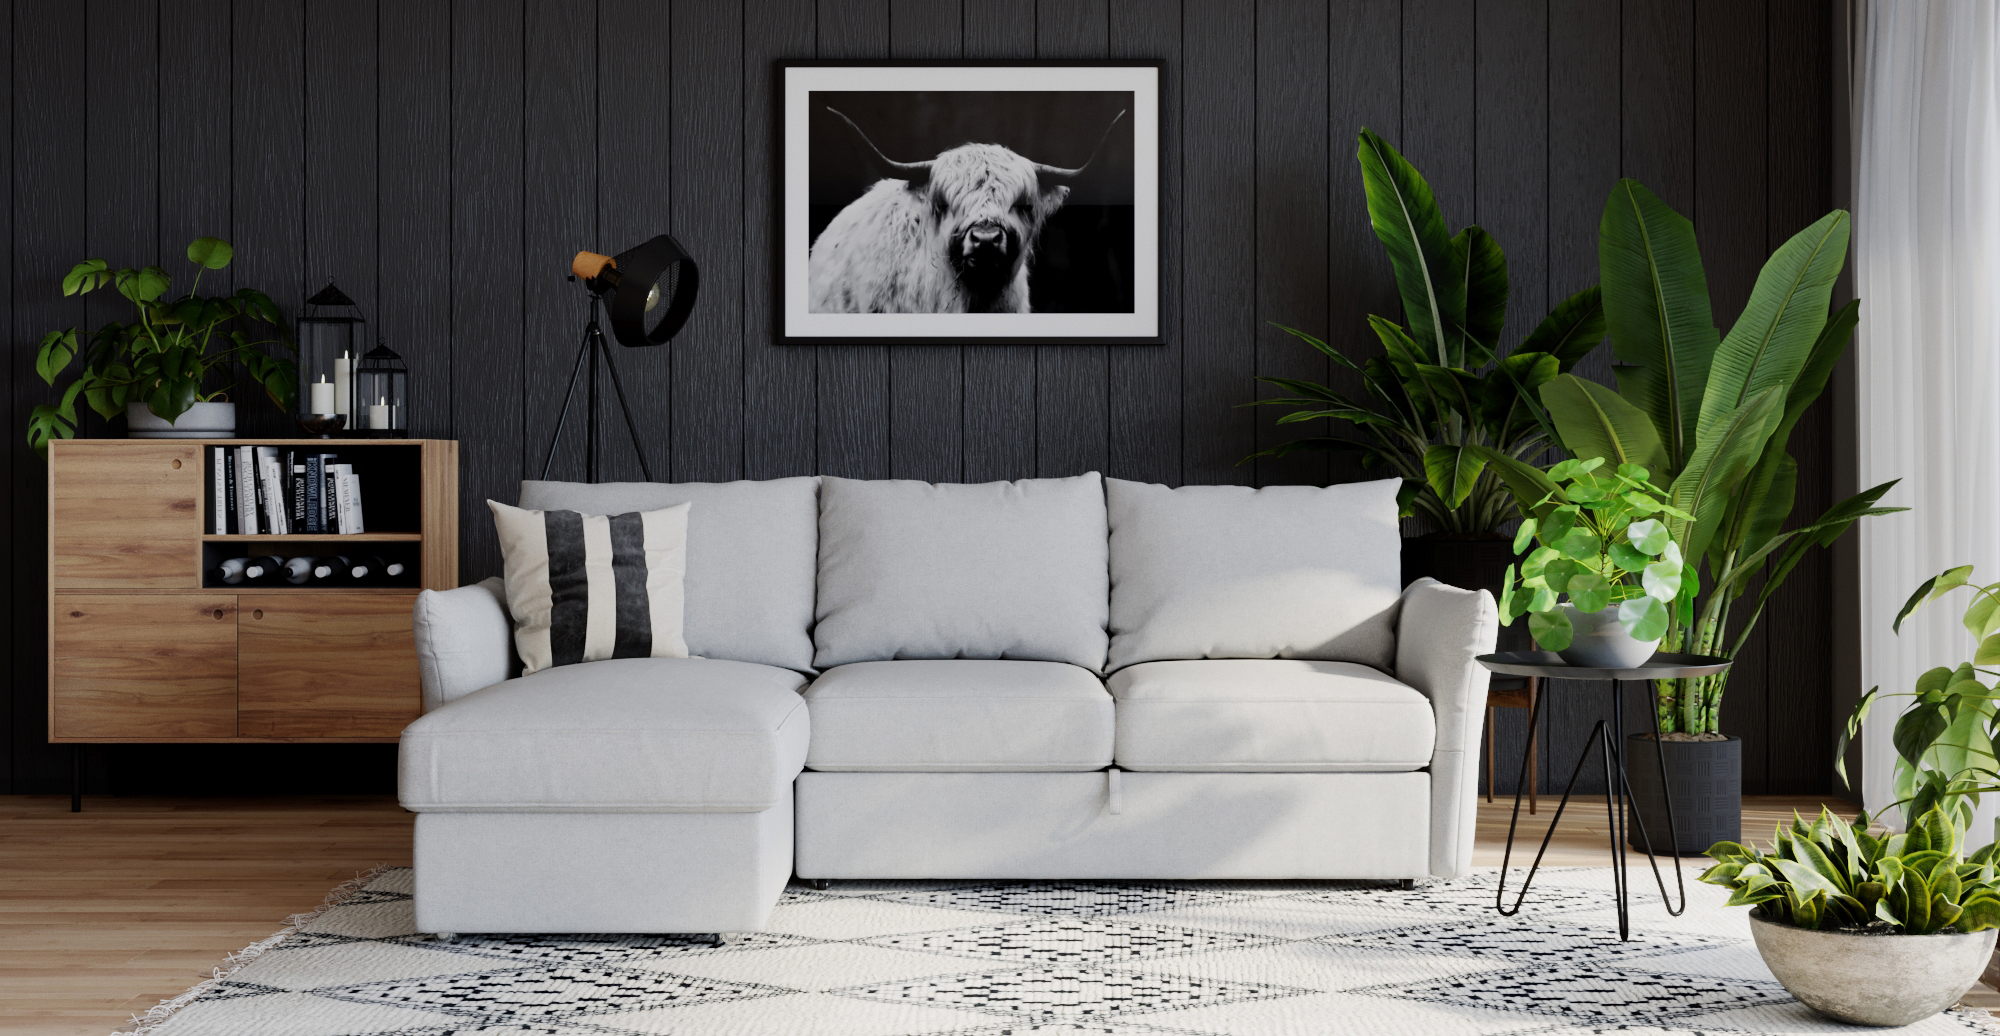 Brosa Austin Full Sleeper Modular Sofa with Storage styled in modern contemporary living room